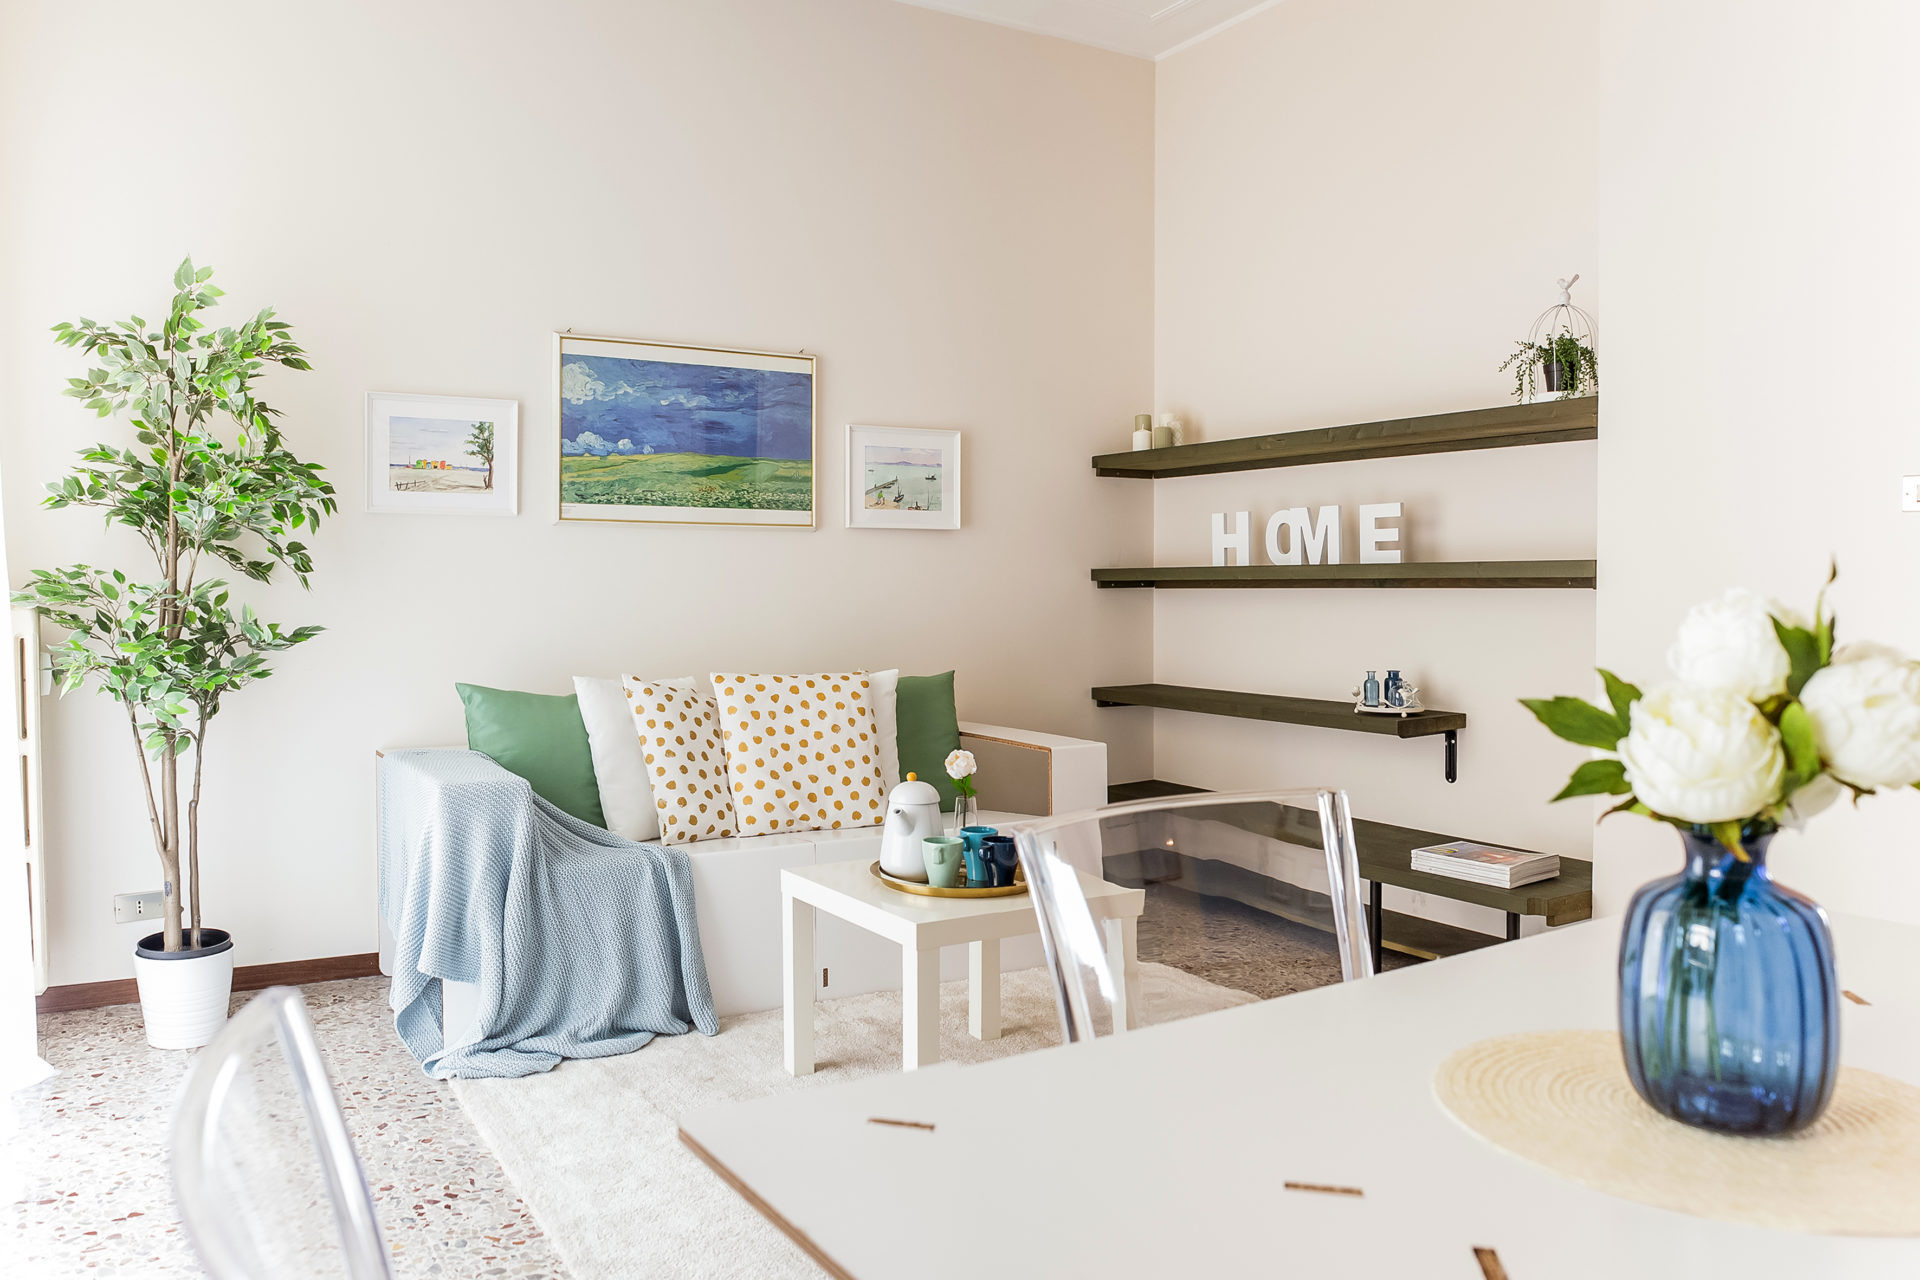 Archetipi - Home staging